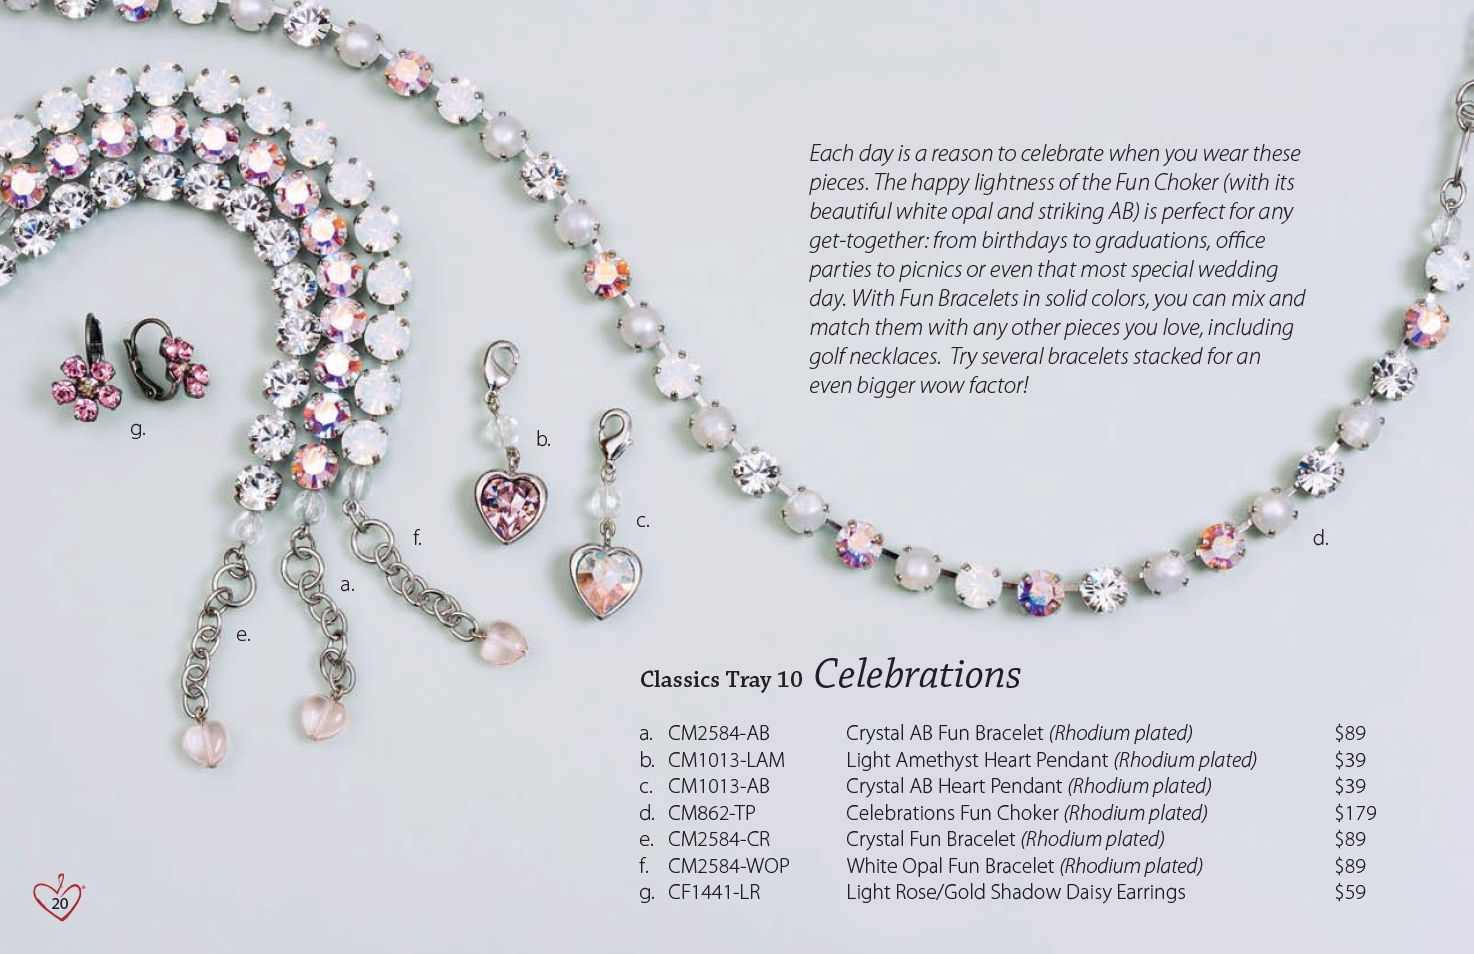 Sabika look necklace - Sabika Classics Collection Tray 10 Celebrations One Of My Favorites